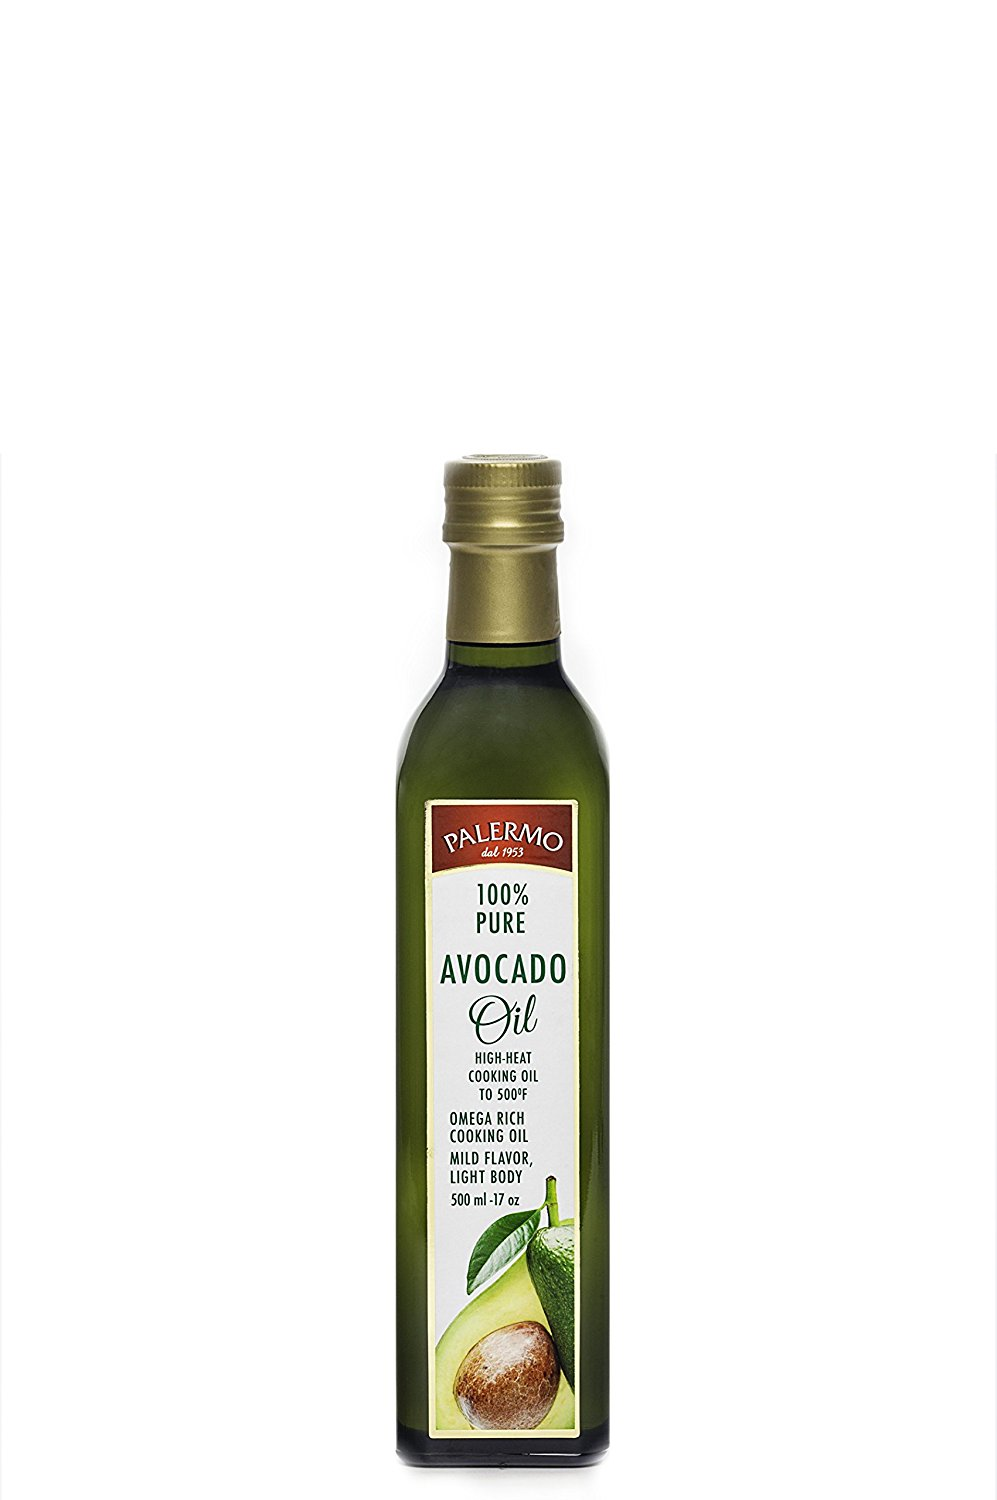 Palermo Avocado Oil